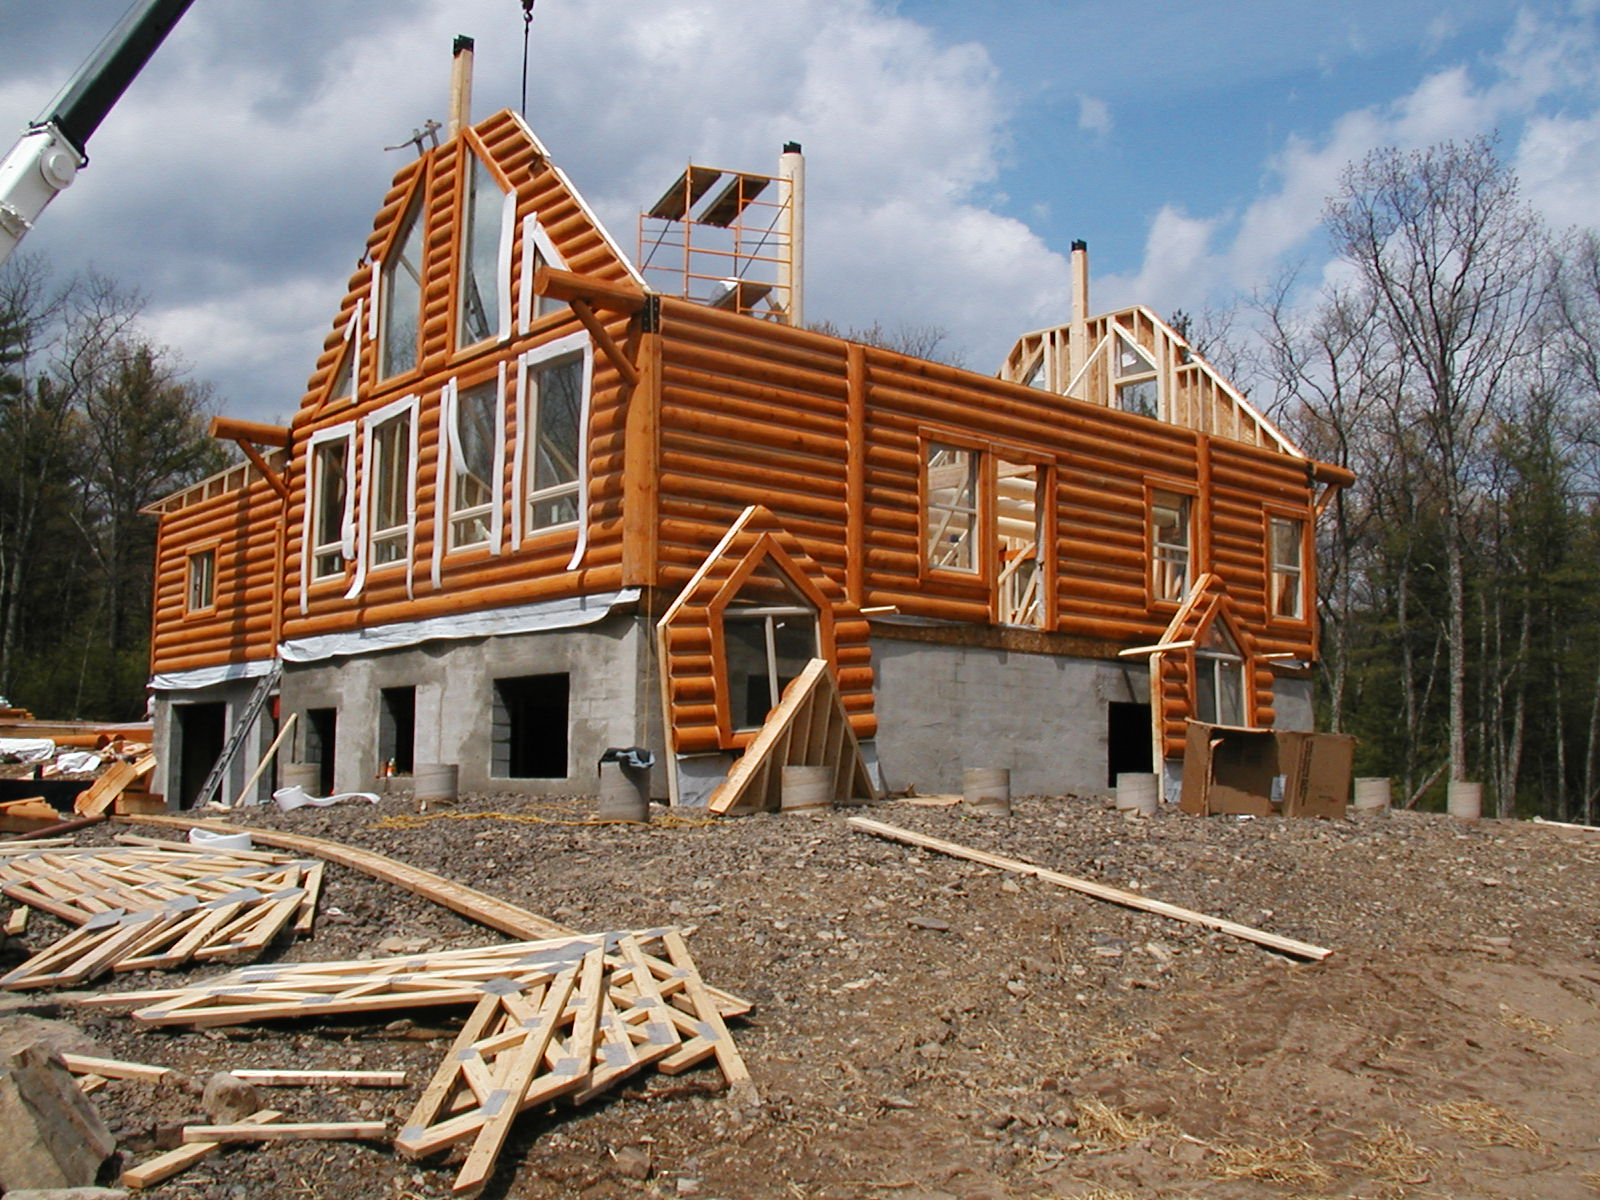 House Building Tips The House Plan Shop Blog » 5 Practical Tips For Building A New Home